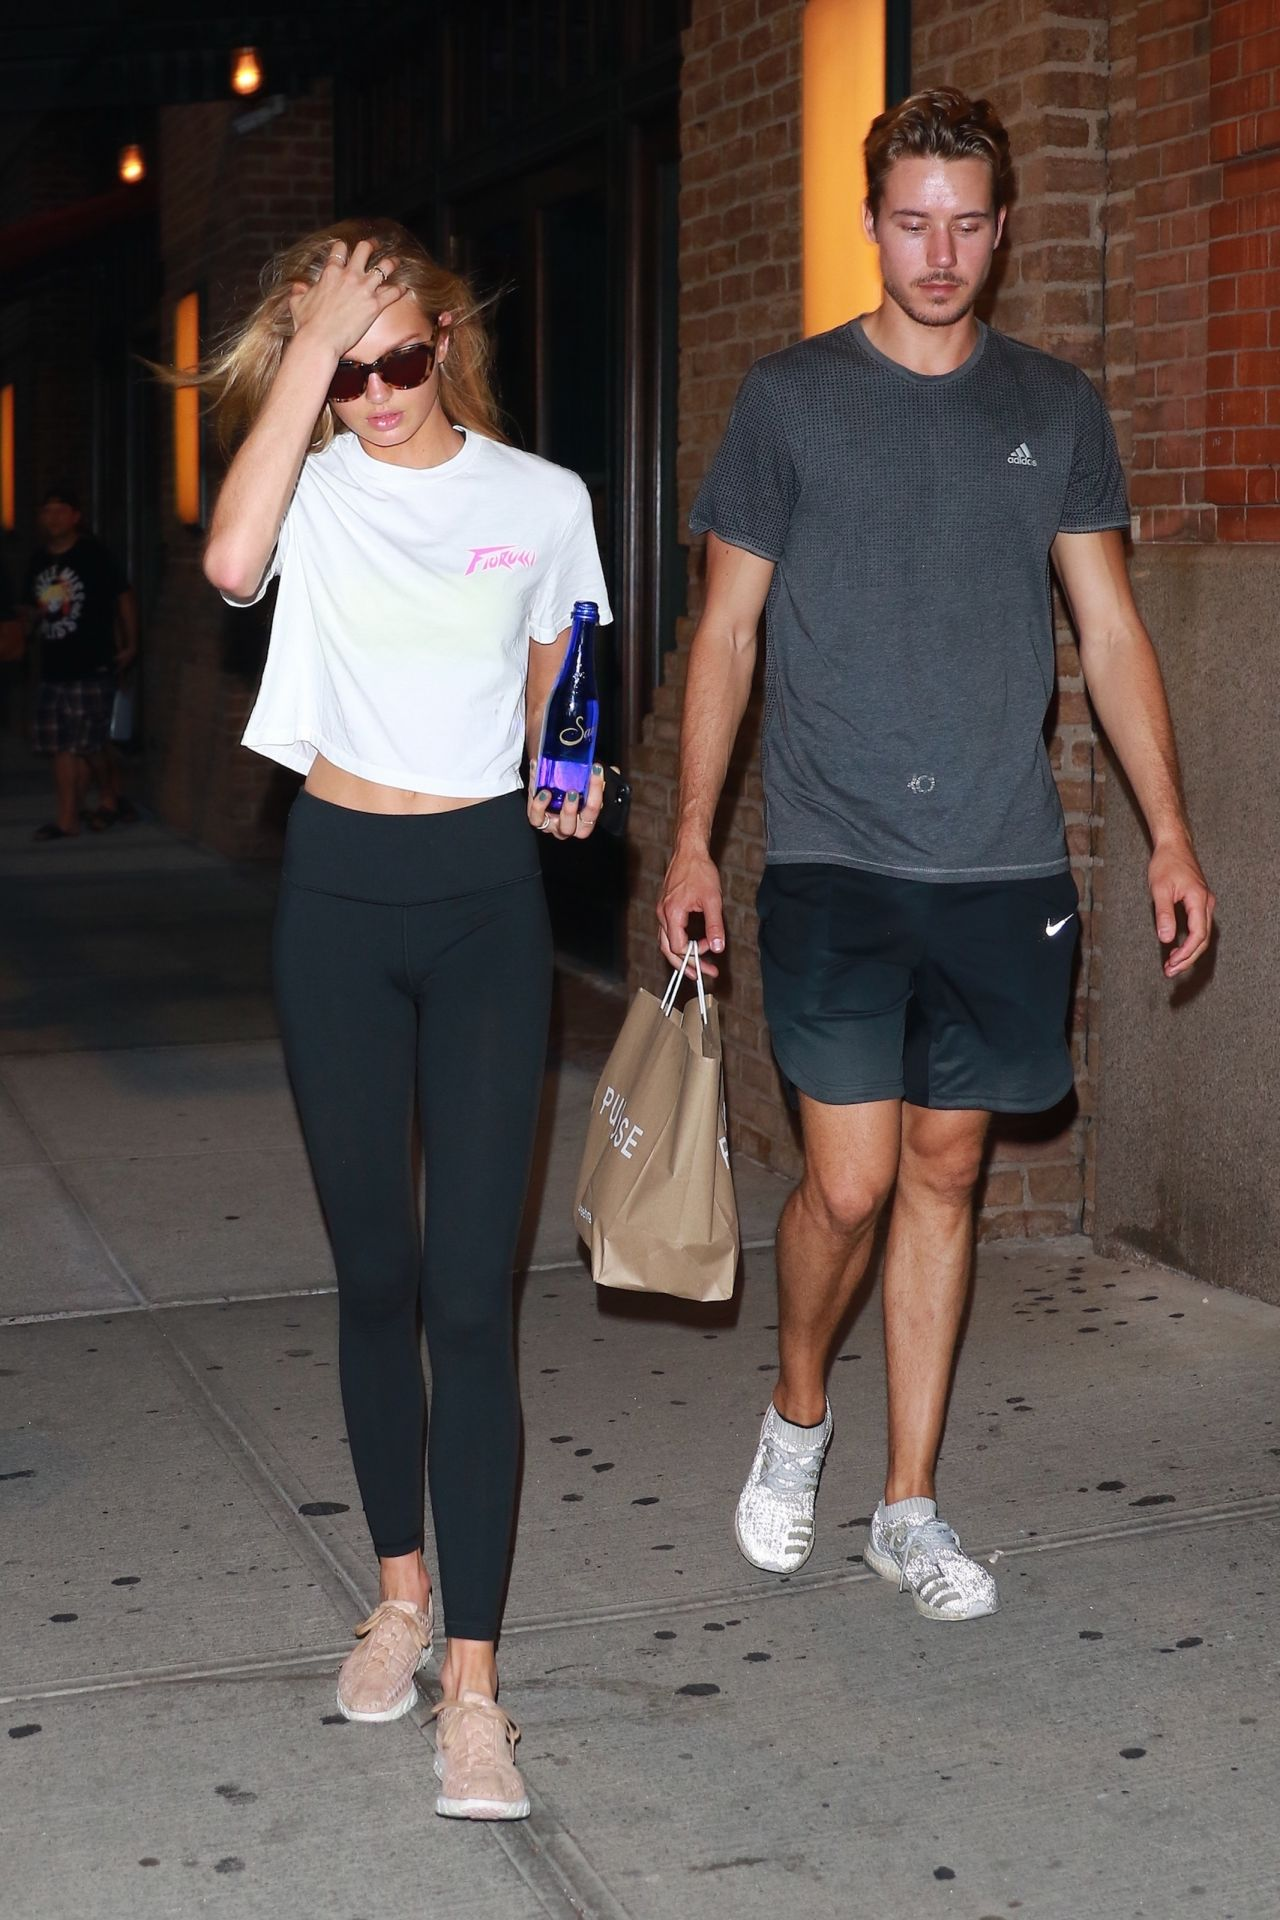 Romee strijd in tights walks with her boyfriend in new york naked (17 image)